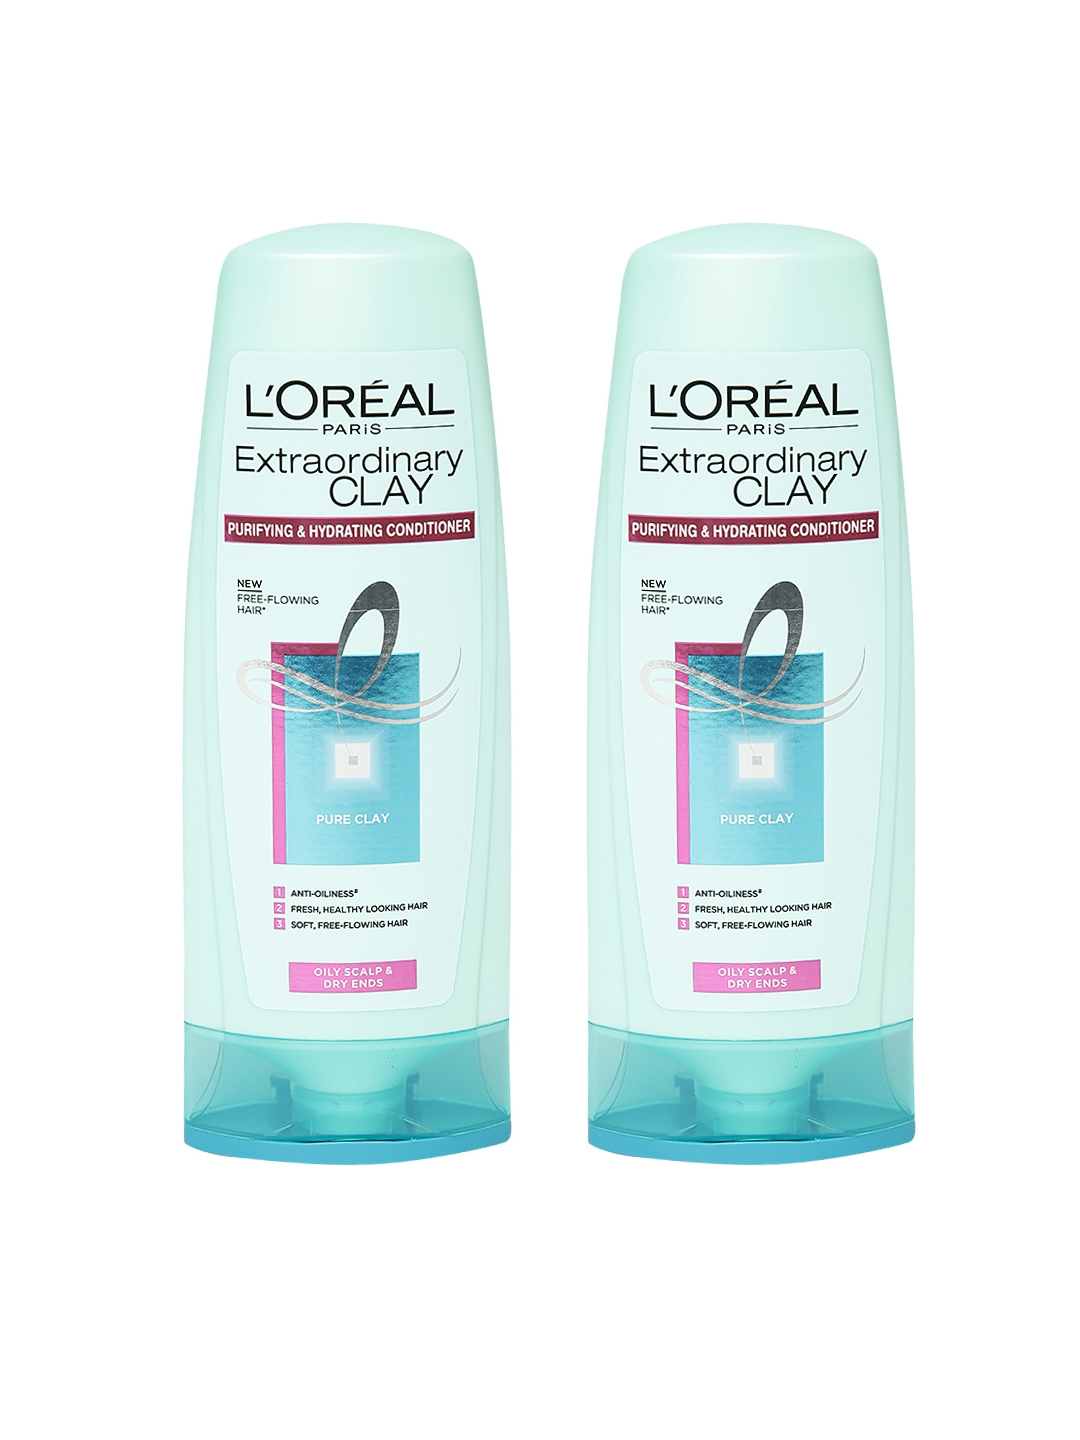 L'Oreal Paris Set of 2 Extraordinary Clay Purifying   Hydrating Conditioner 175 ml LOreal Shampoo and Conditioner